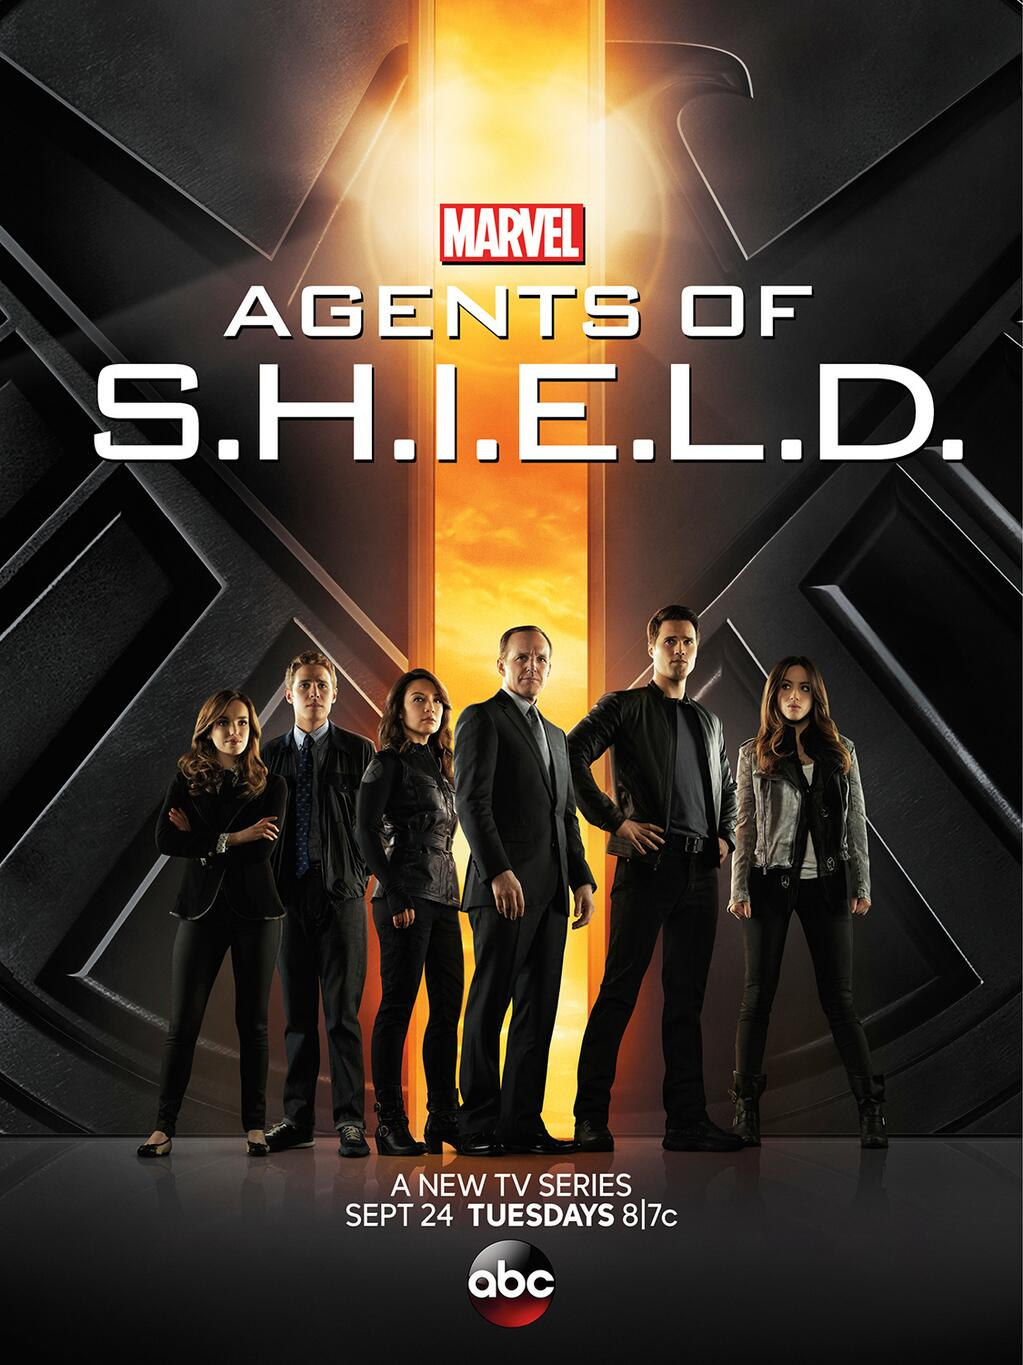 Agents of S.H.I.E.L.D. (2013 series)